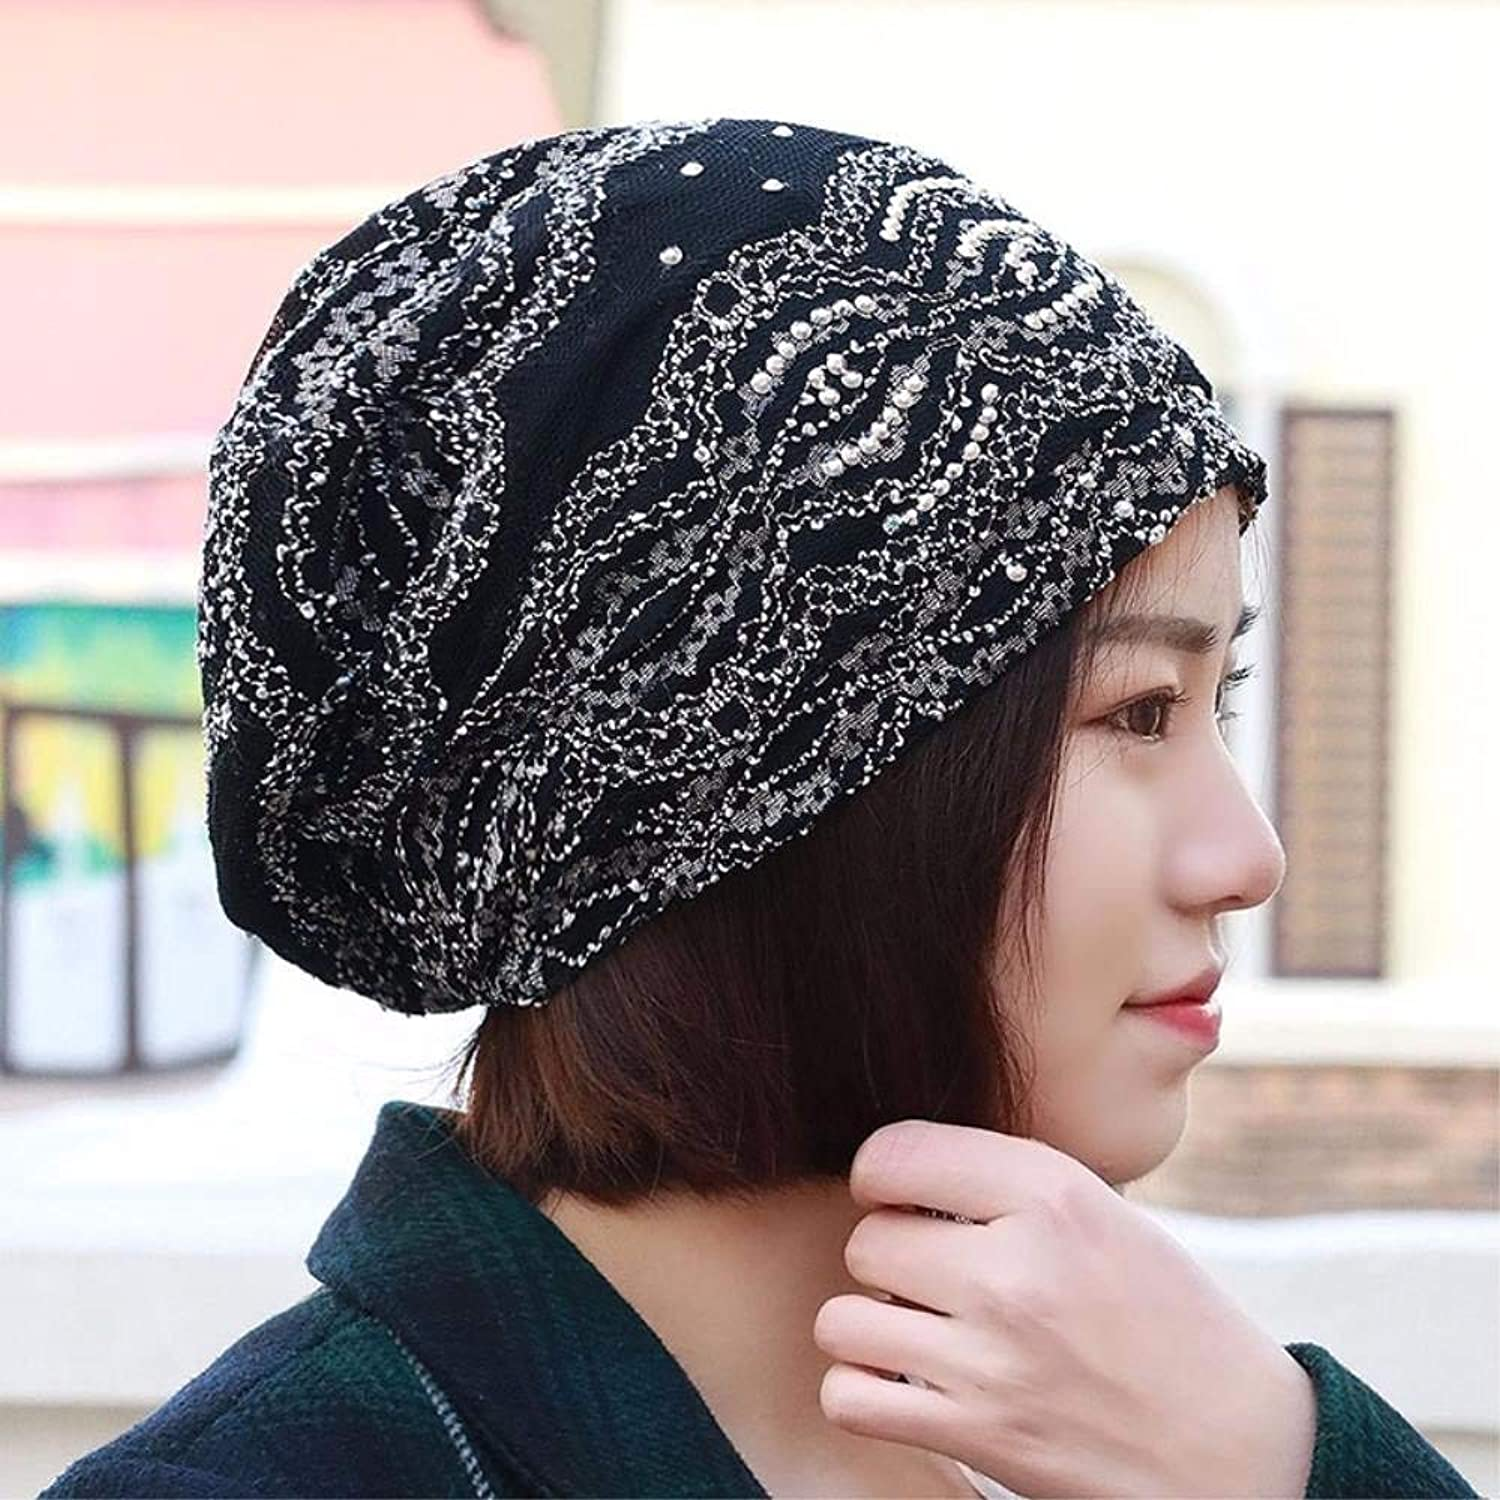 Dianye The girl hat ELASTIC LACE scarf hat set of head cap storehouse of women, pregnant women, the bald cap cap low